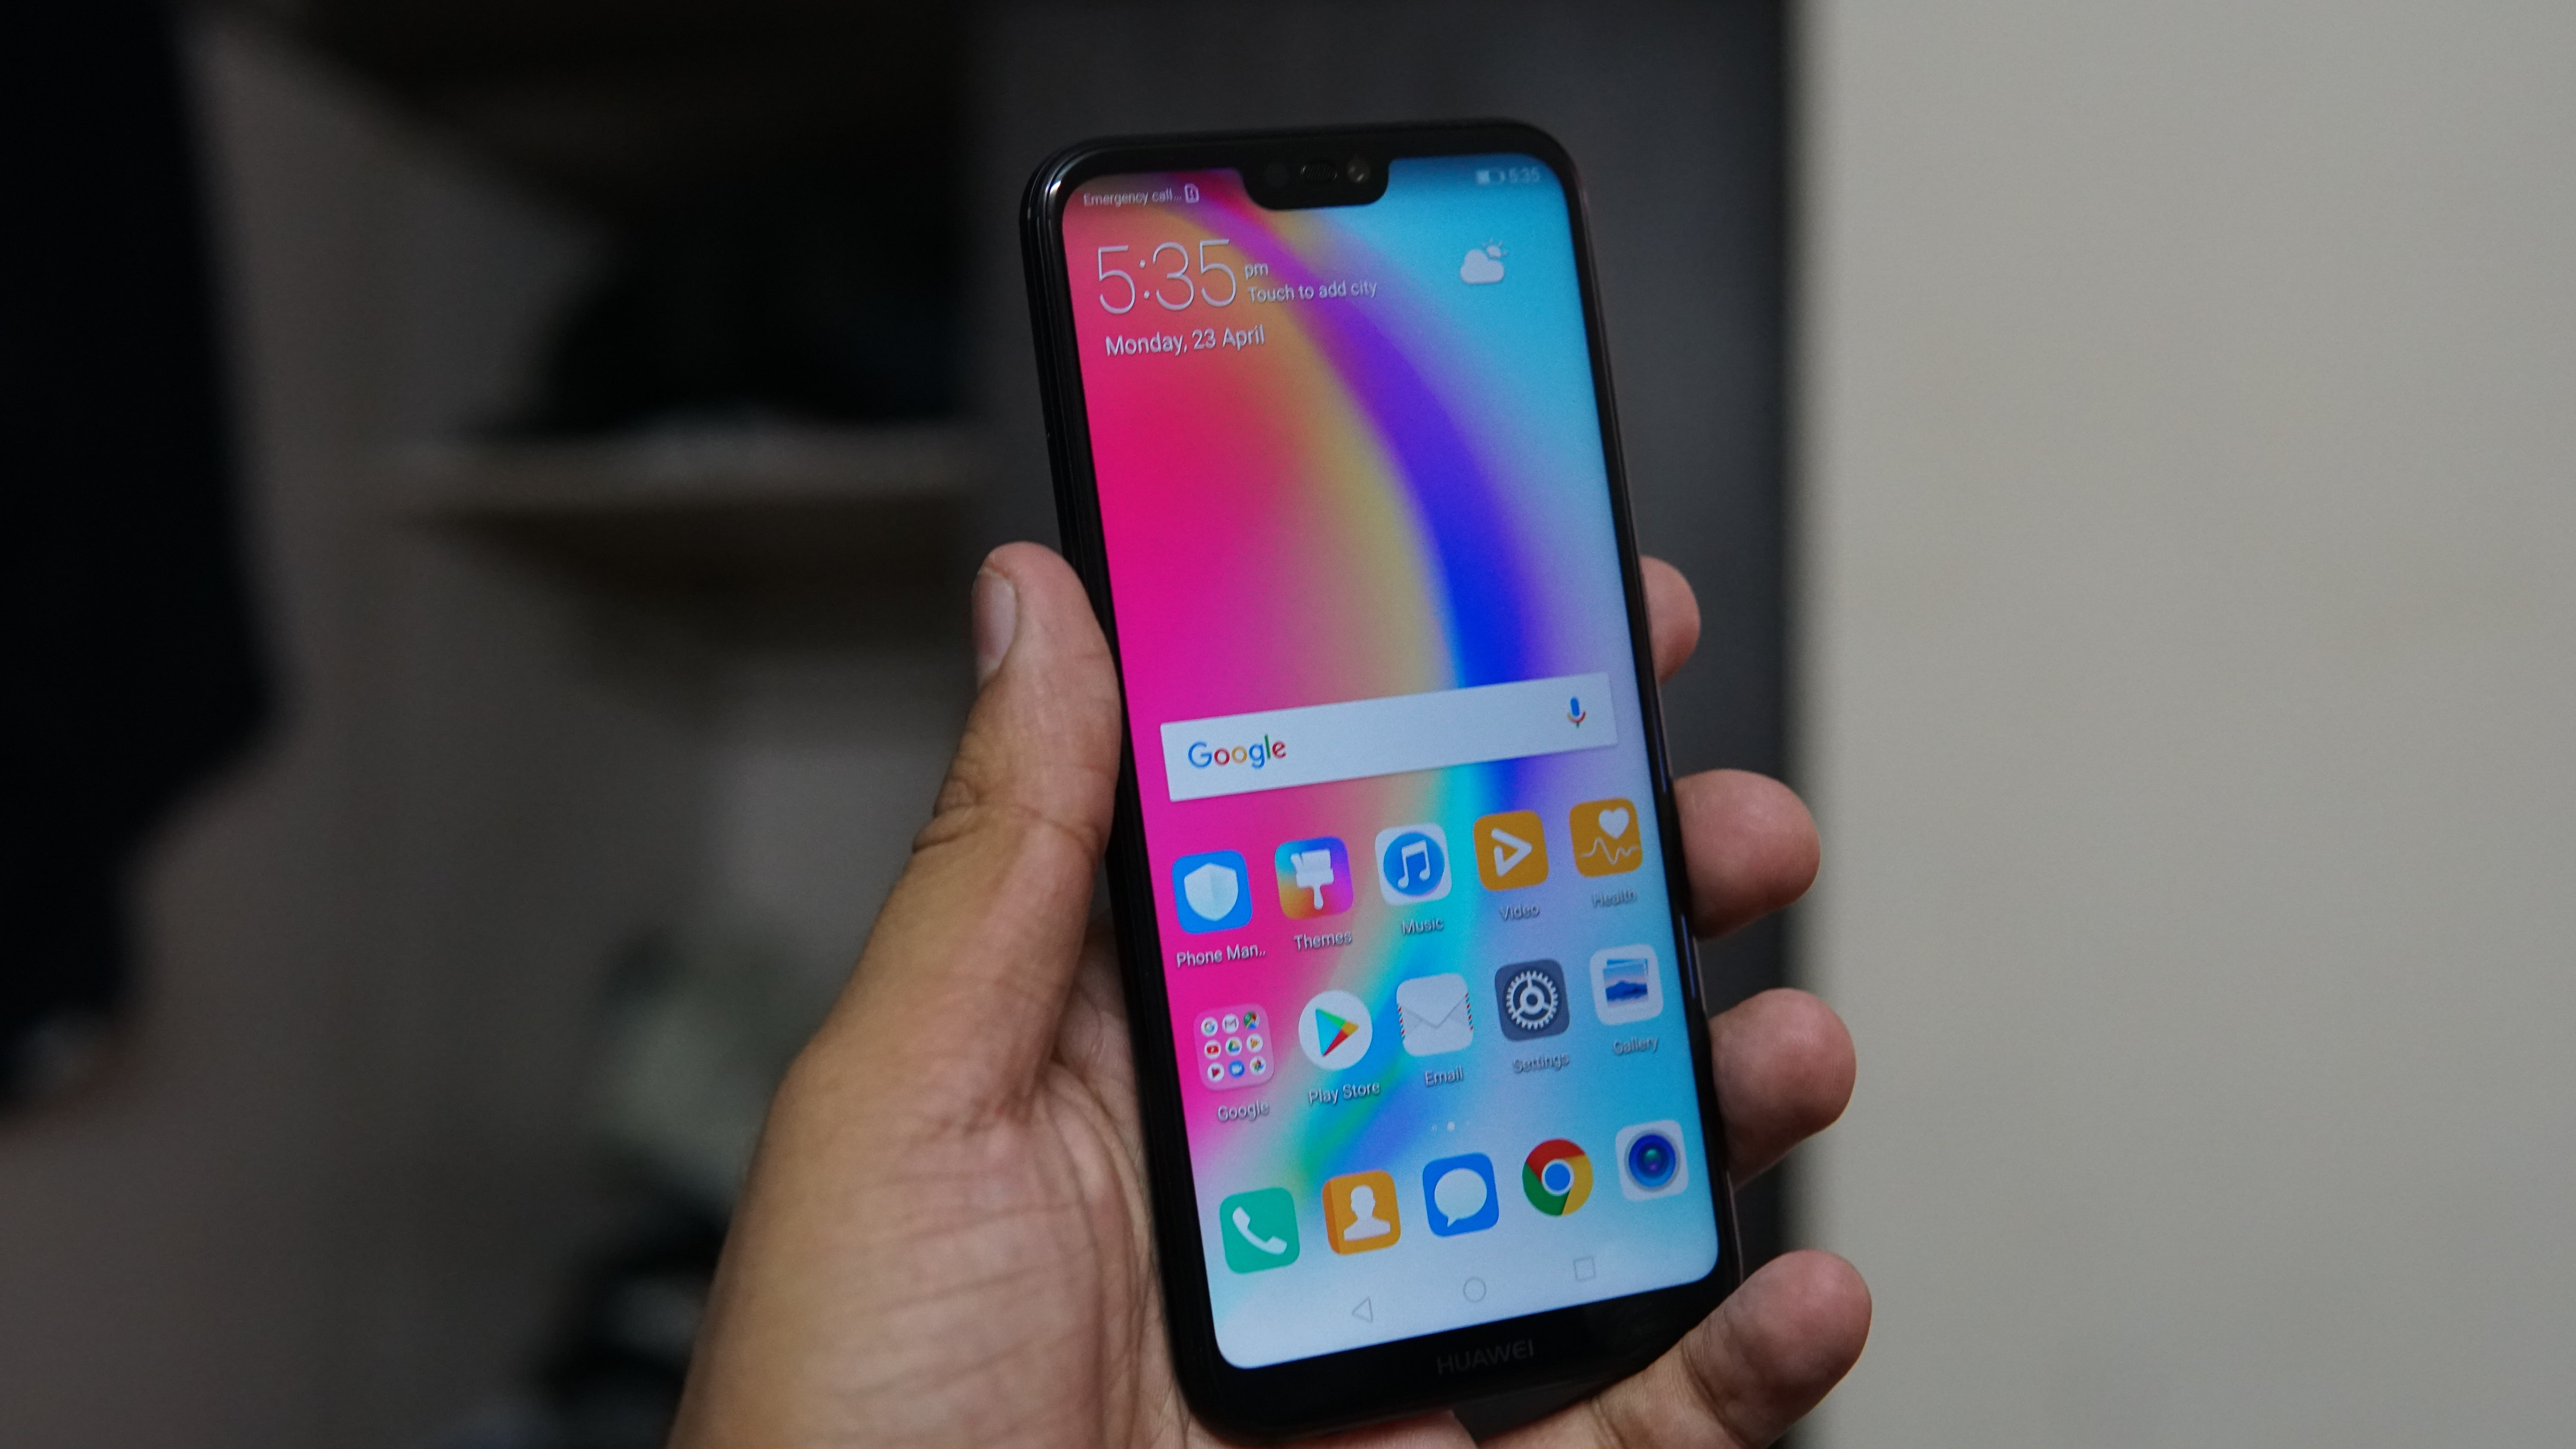 Huawei P20 Lite with 5 84-inch FHD+ 19:9 FullView display